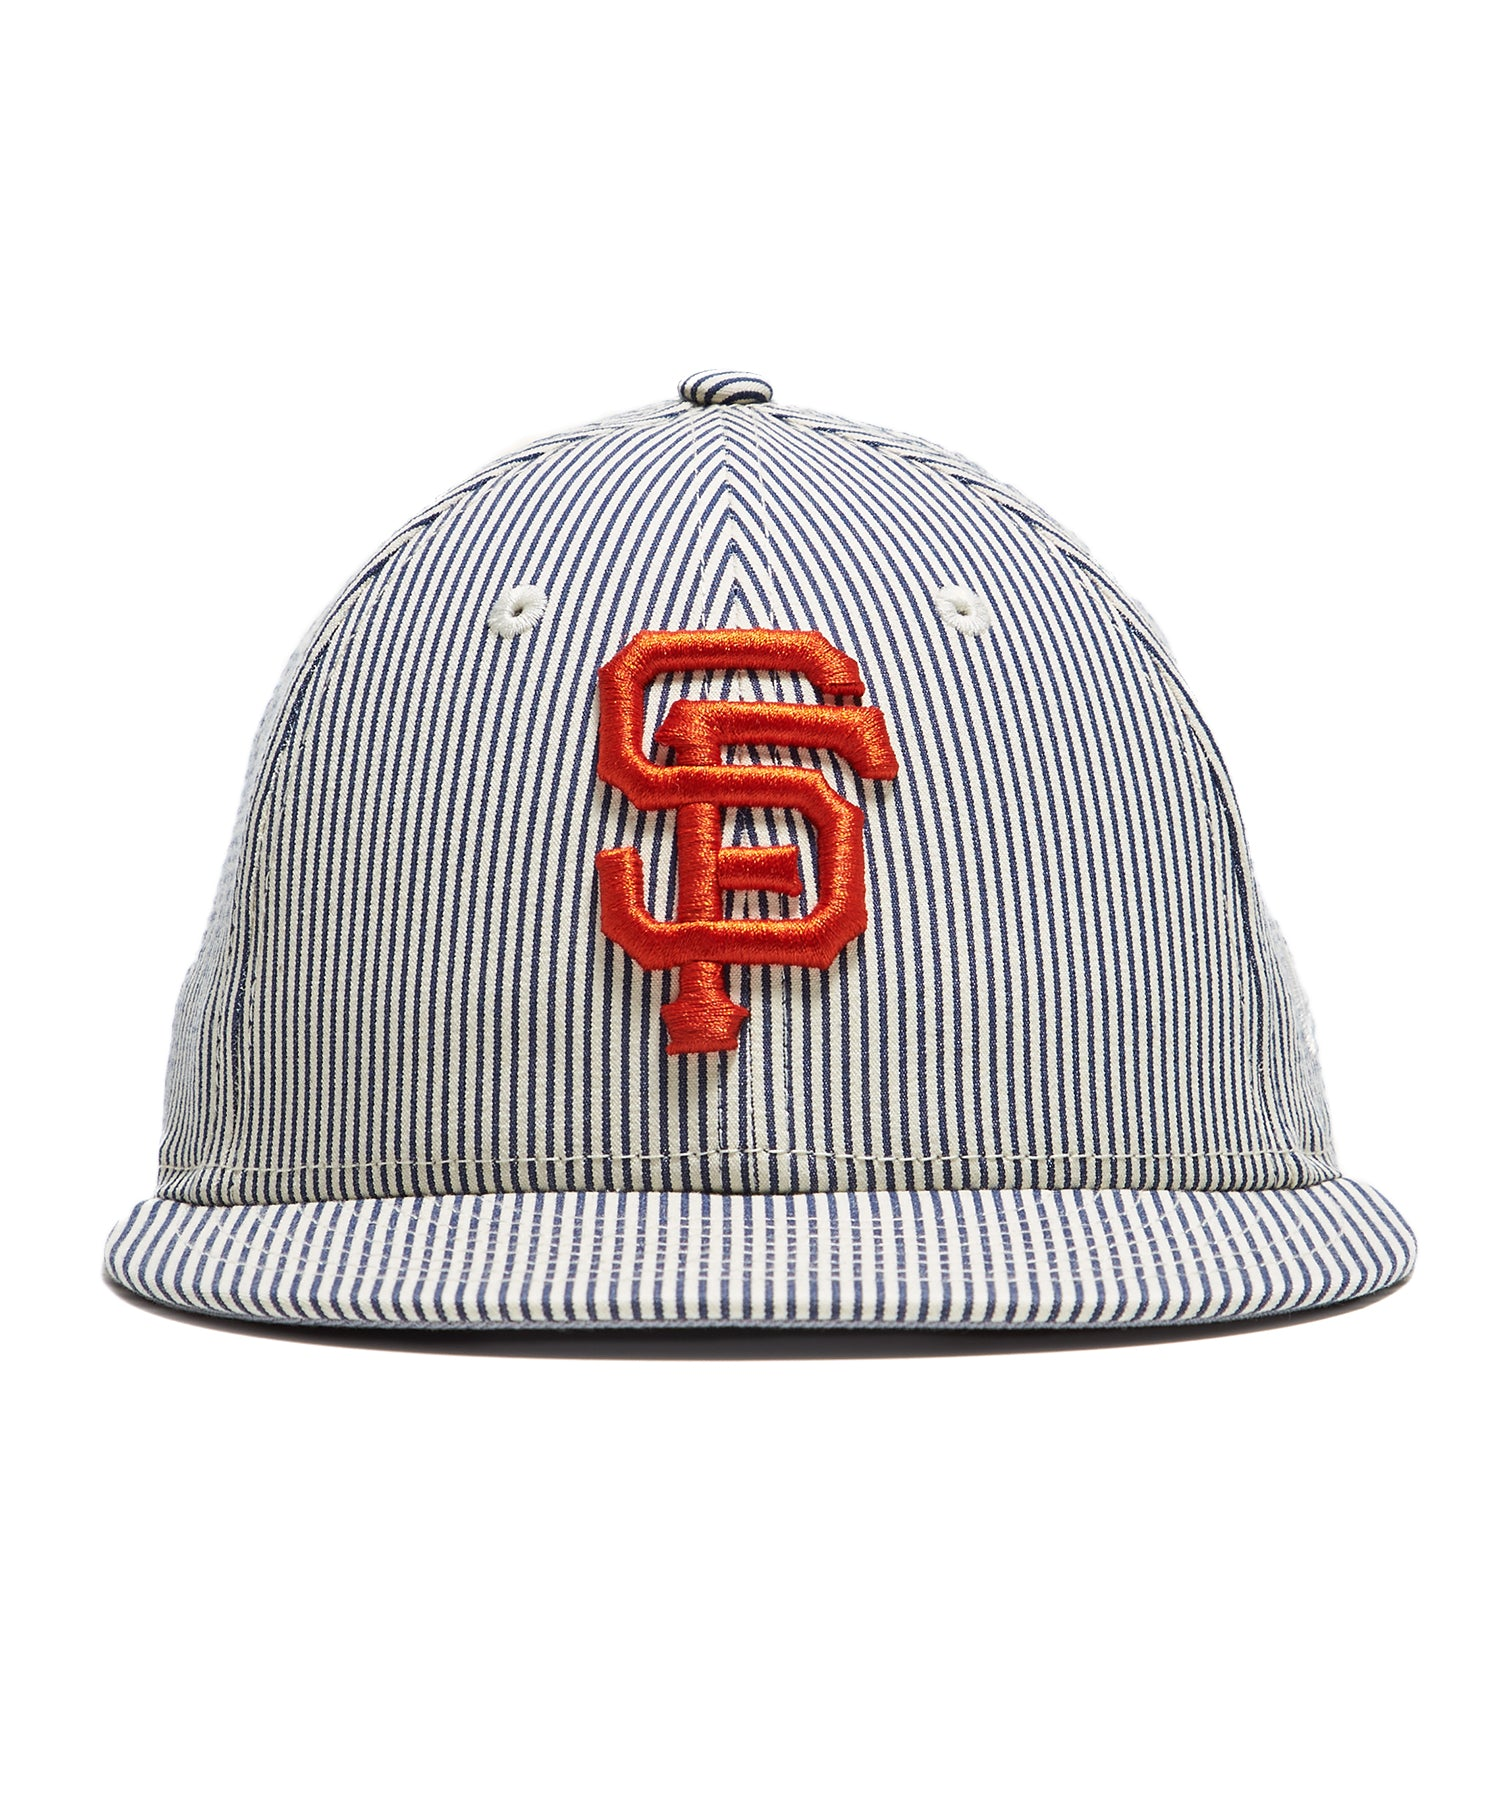 Todd Snyder + New Era San Francisco Giants Cap In Seersucker 2415e16d7ab5